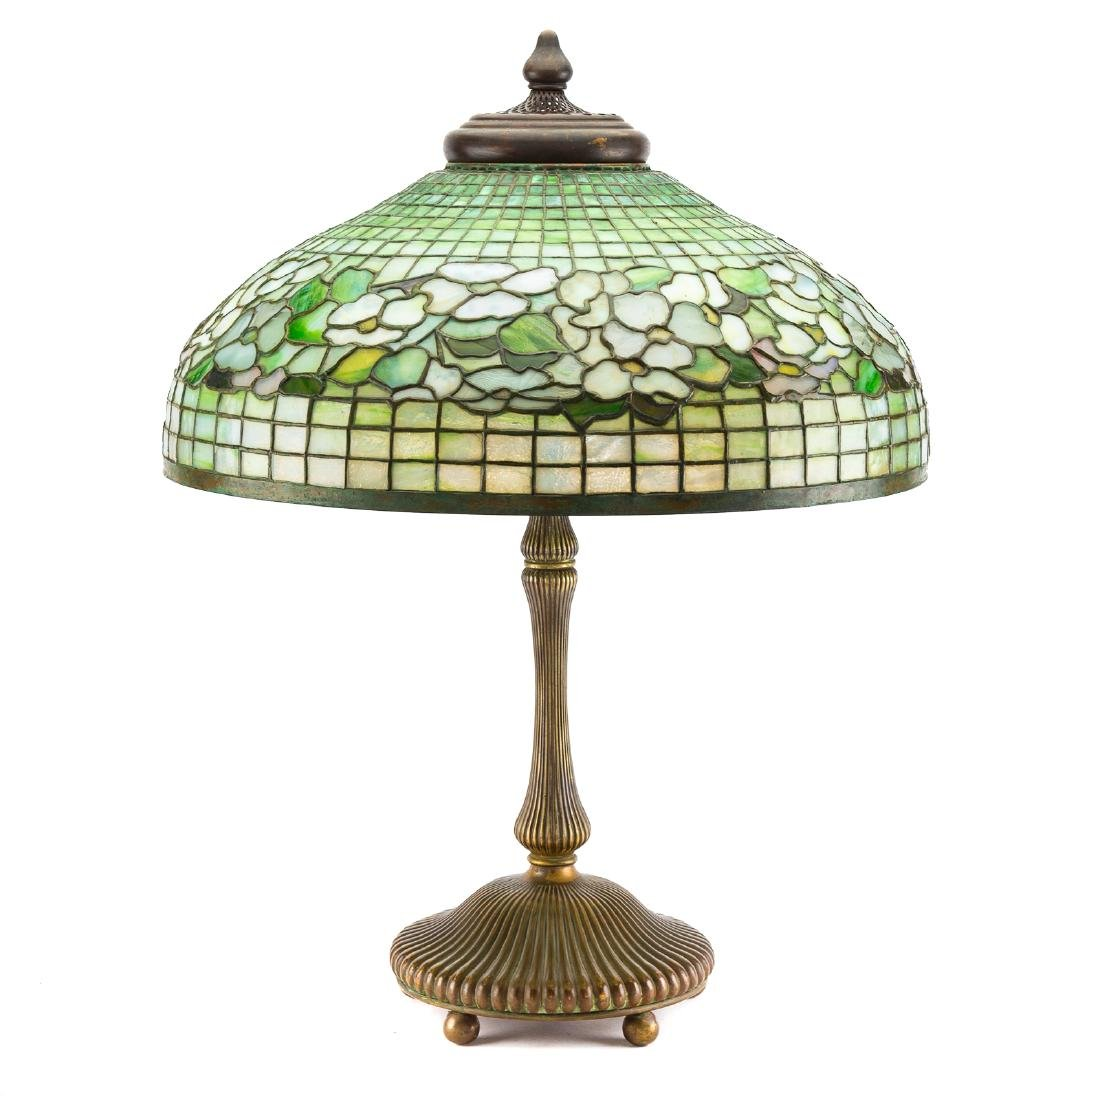 Tiffany leaded glass and bronze table lamp